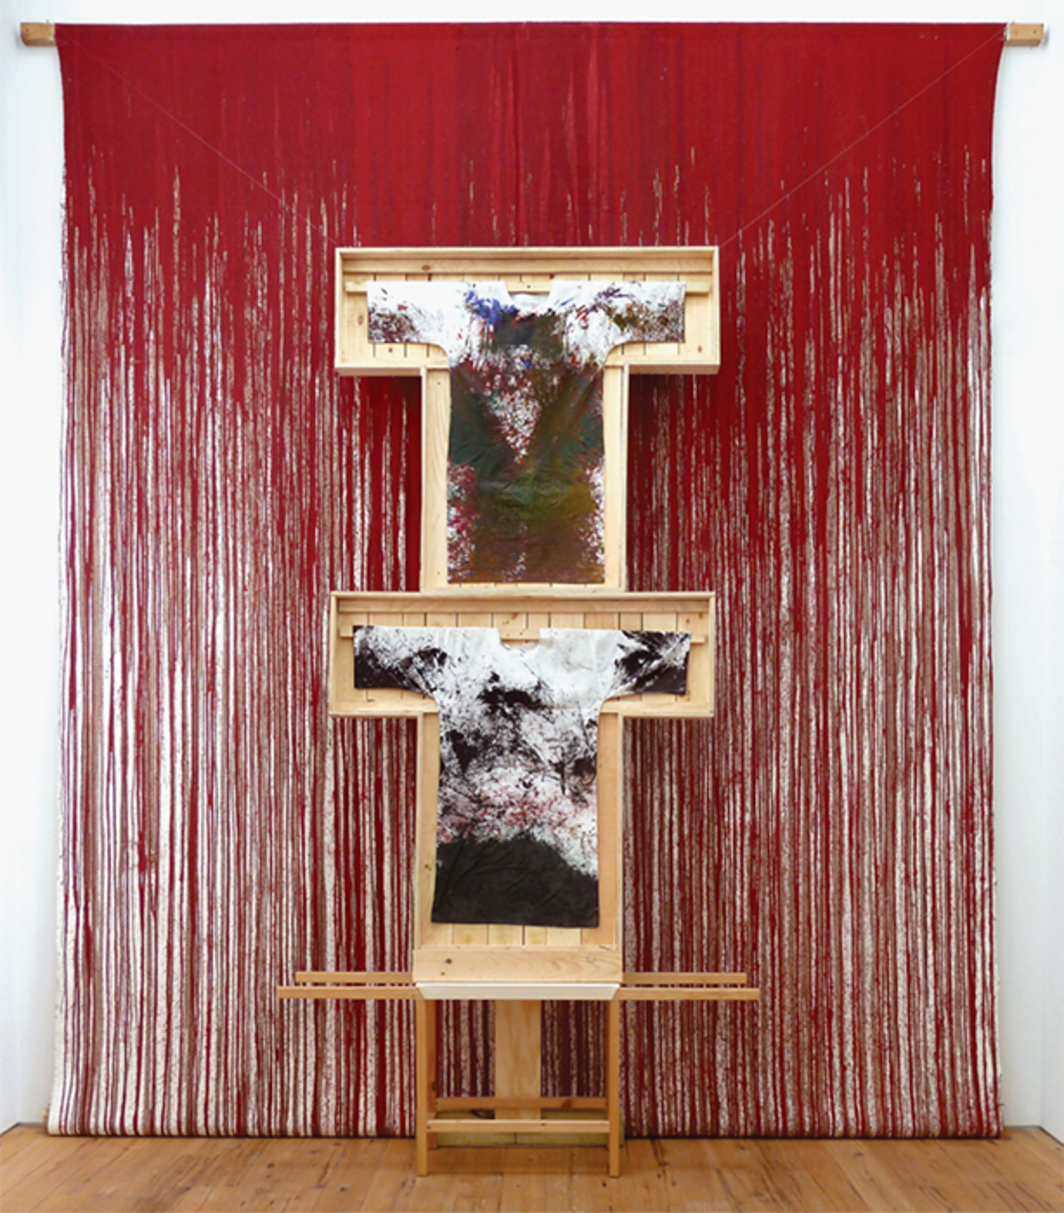 "Hermann Nitsch, Schüttbild (Splatter Painting), 2011, acrylic on canvas and cotton shirts, wood, 17' 8 1/2"" × 13' 1 1/2"" × 3'."